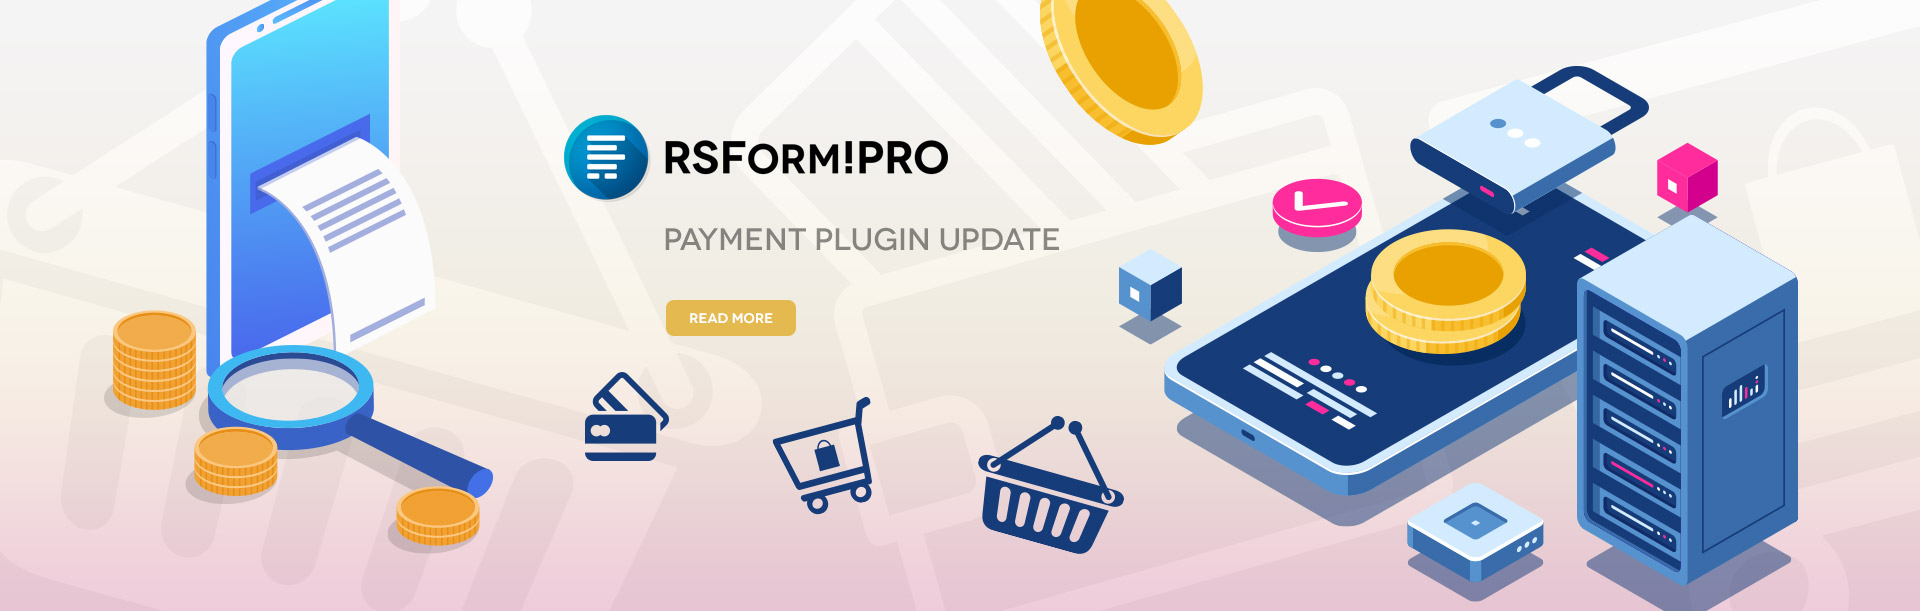 RSForm!Pro New Payment Plugin